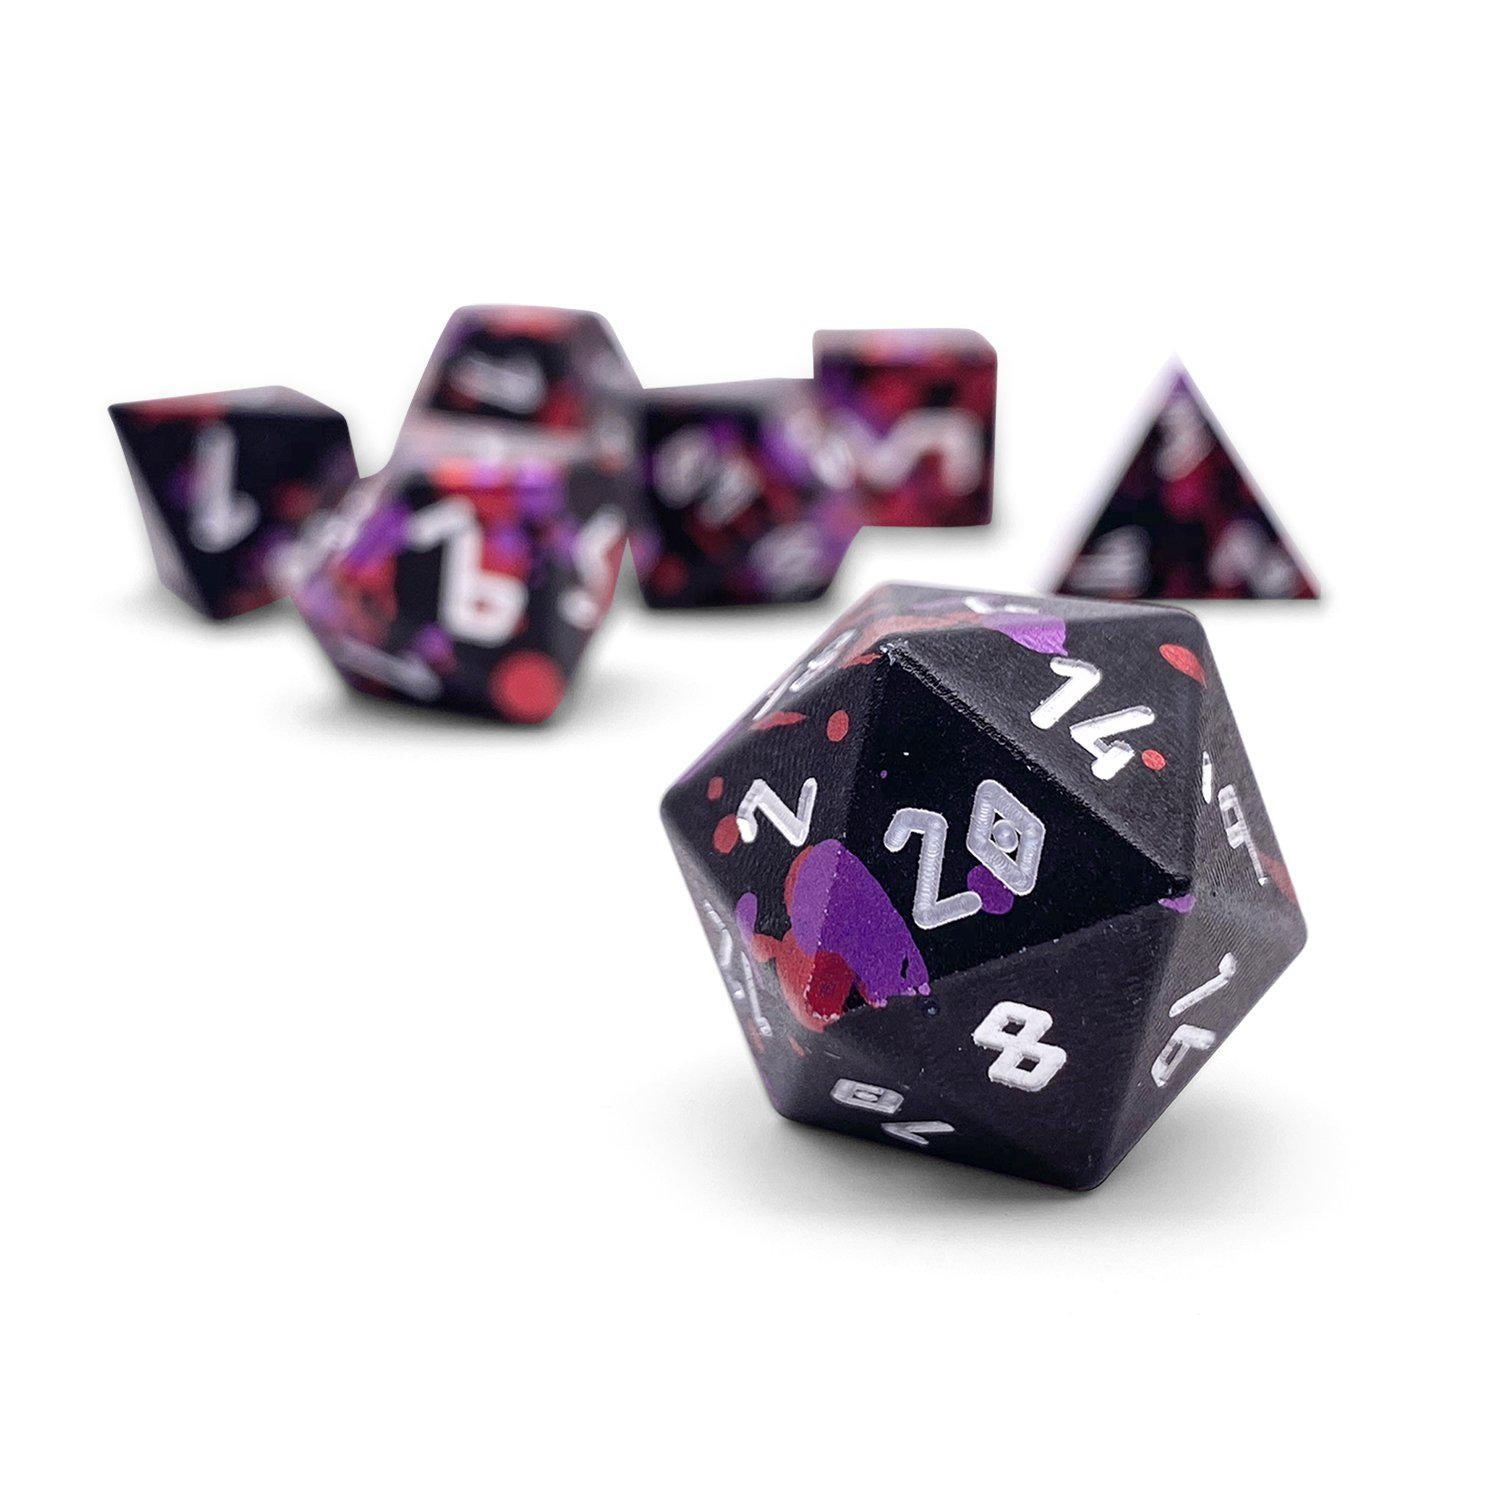 Infernal Pact - Wondrous Dice Set of 7 RPG Dice by Norse Foundry Precision Polyhedral Dice Set